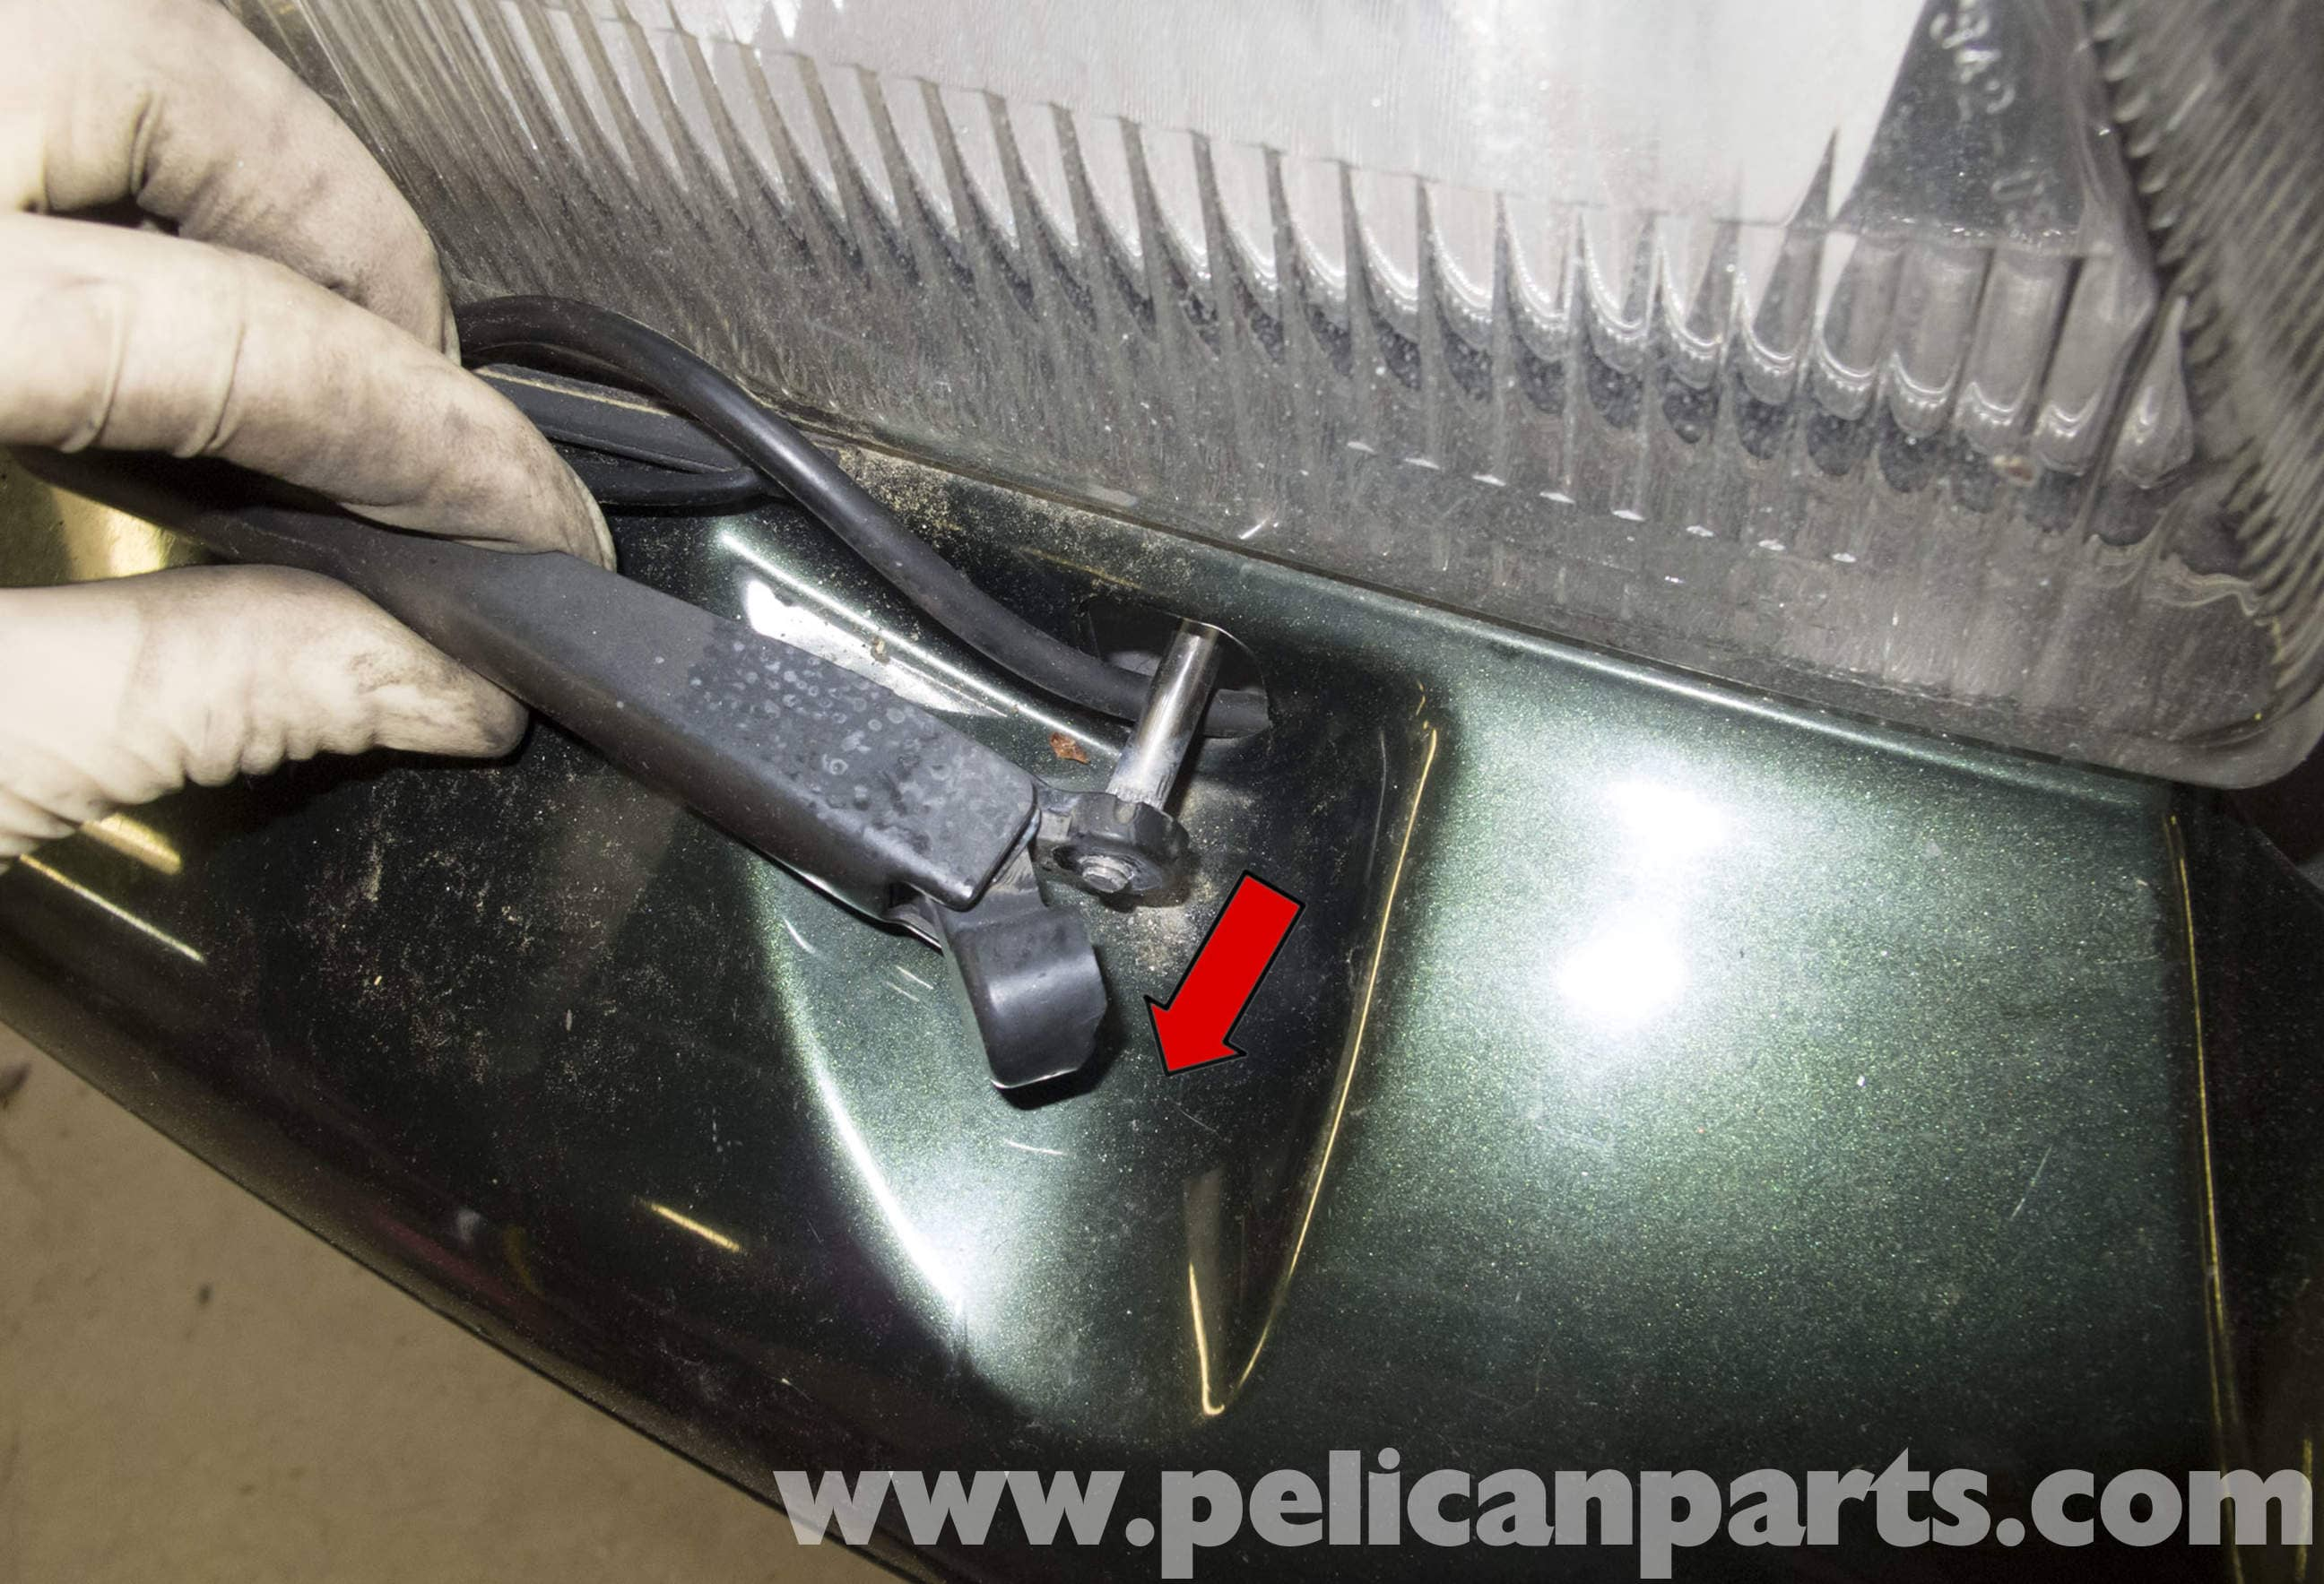 Volvo V70 Headlight Wiper Motor Replacement (1998-2007) - Pelican Parts DIY Maintenance Article